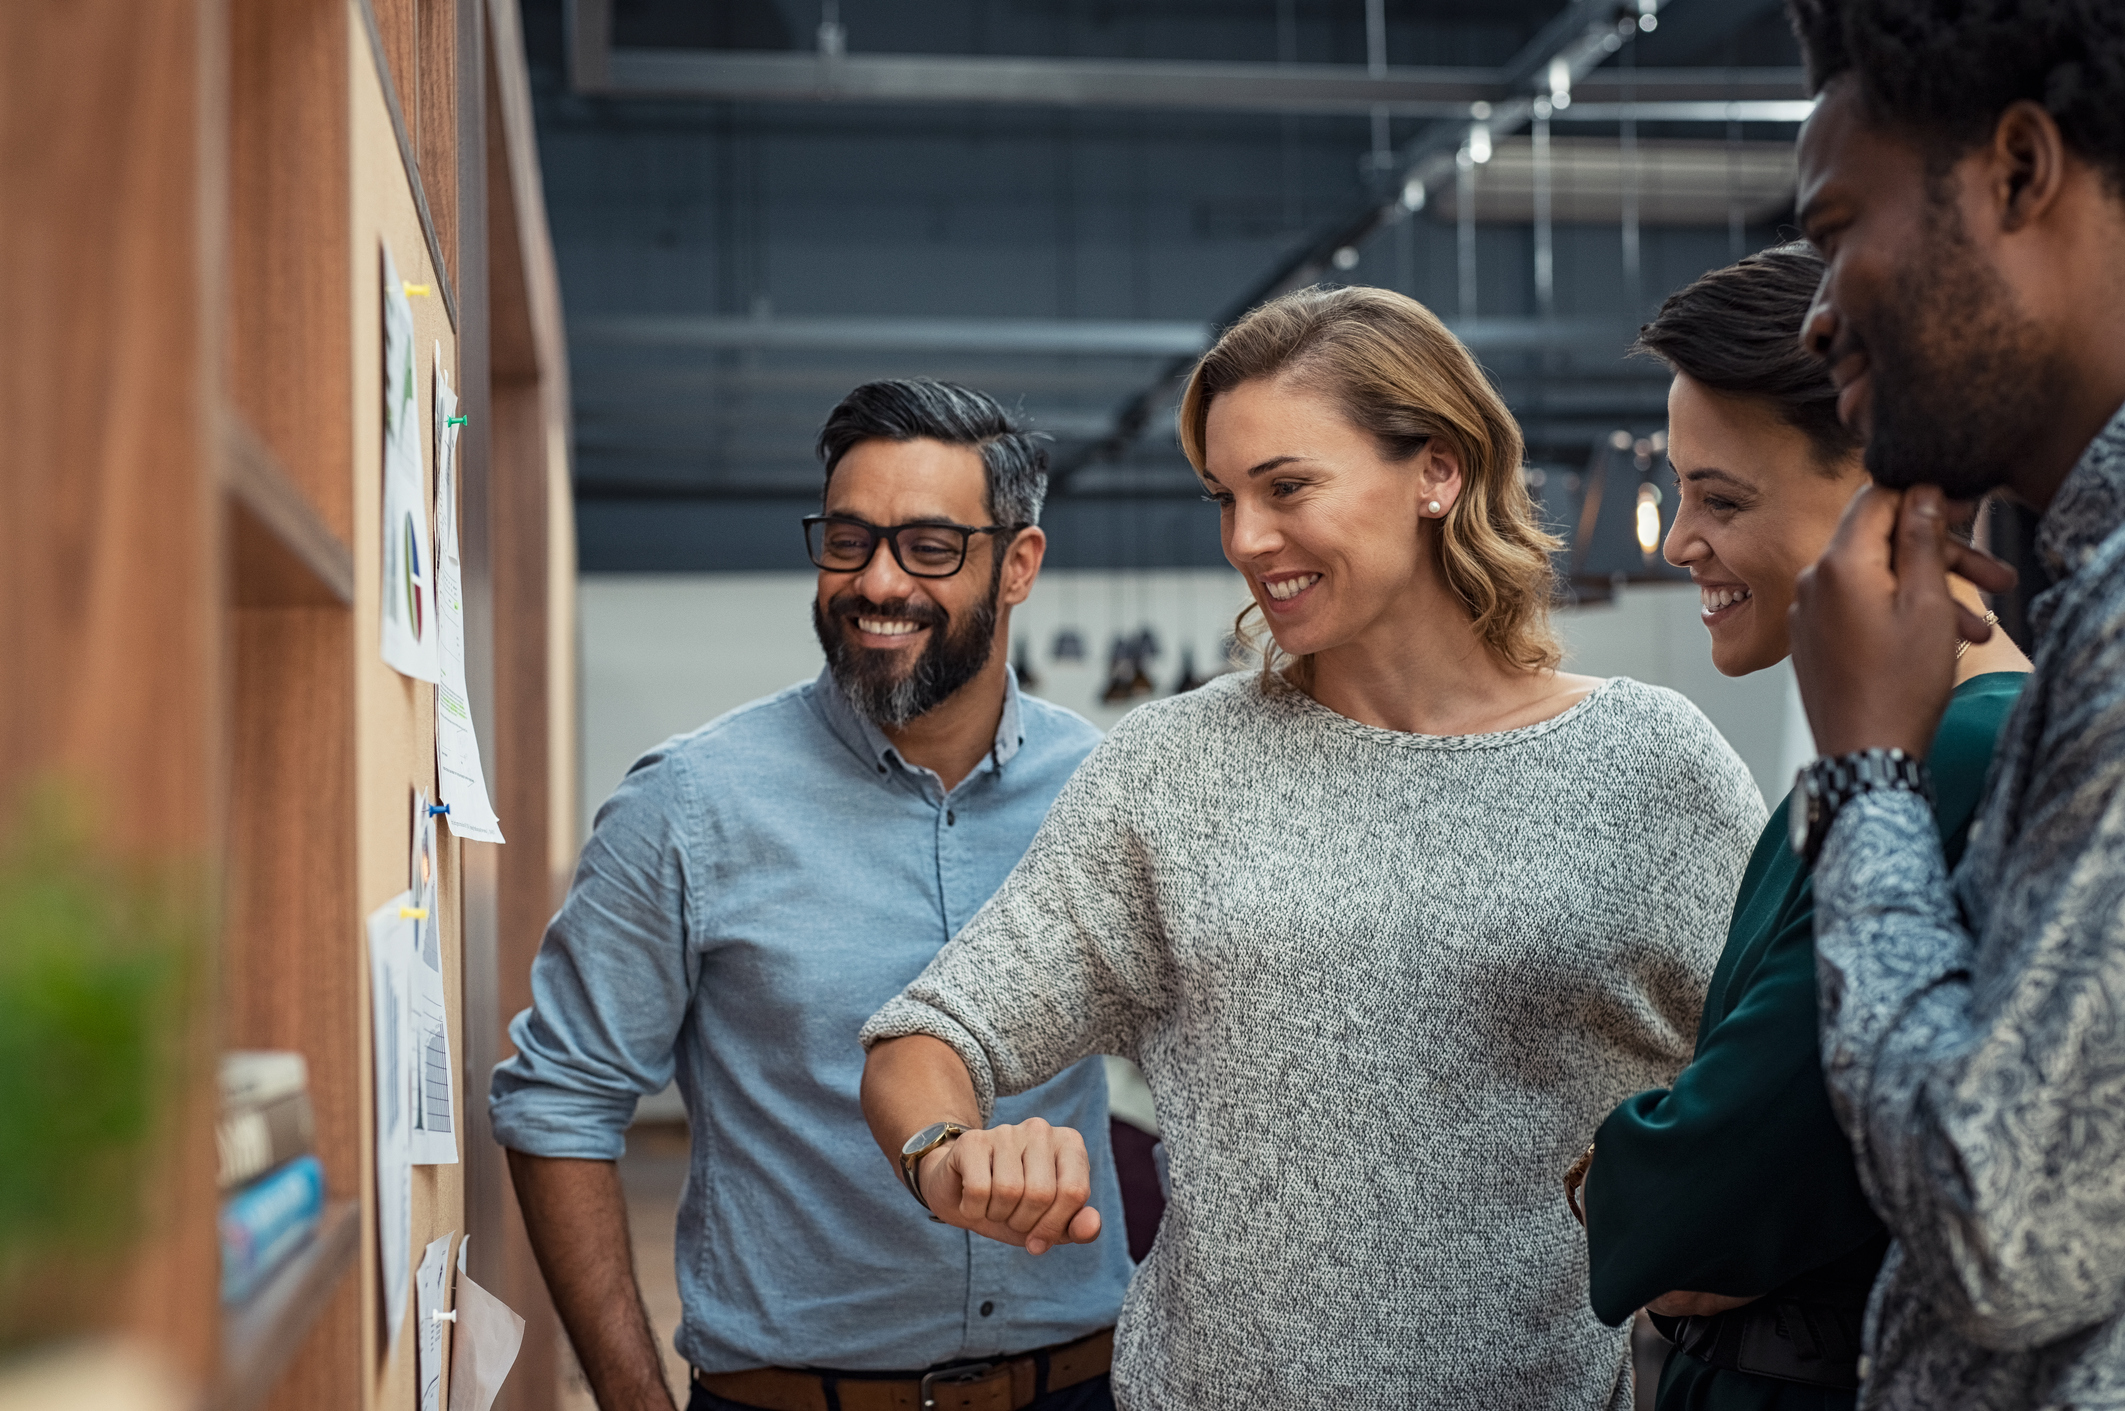 Group of mature businesspeople planning business strategy while looking at infographic displayed on wall. Business men and casual women looking at pie charts. Successful startup partners feeling happy on seeing progress in charts.